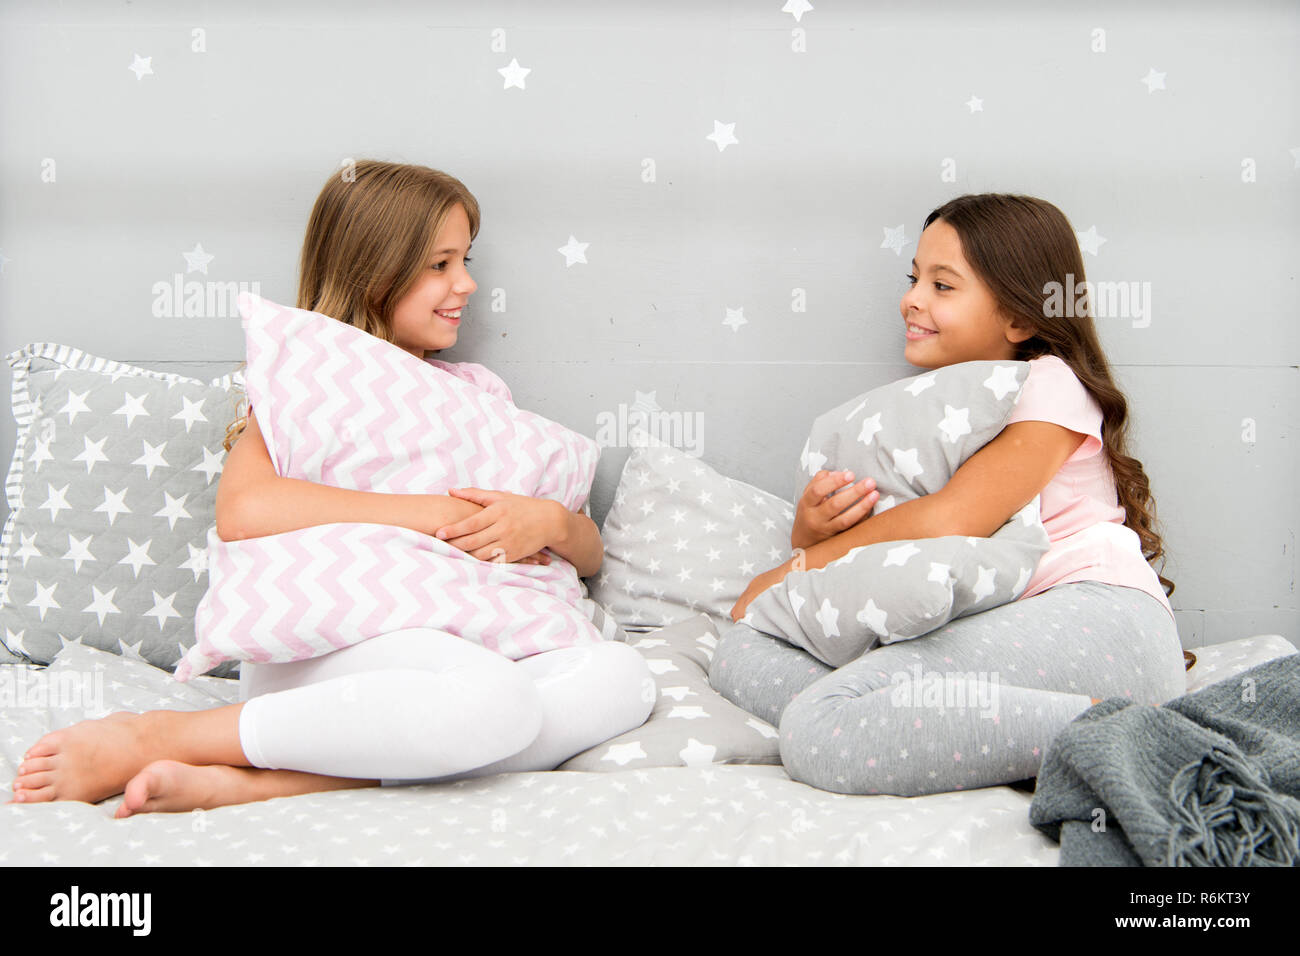 Sisters communication. Sisters communicate while relax in bedroom. Family time. Children relax and having fun in evening. Sisters leisure. Girls in cute pajamas spend time together in bedroom. - Stock Image